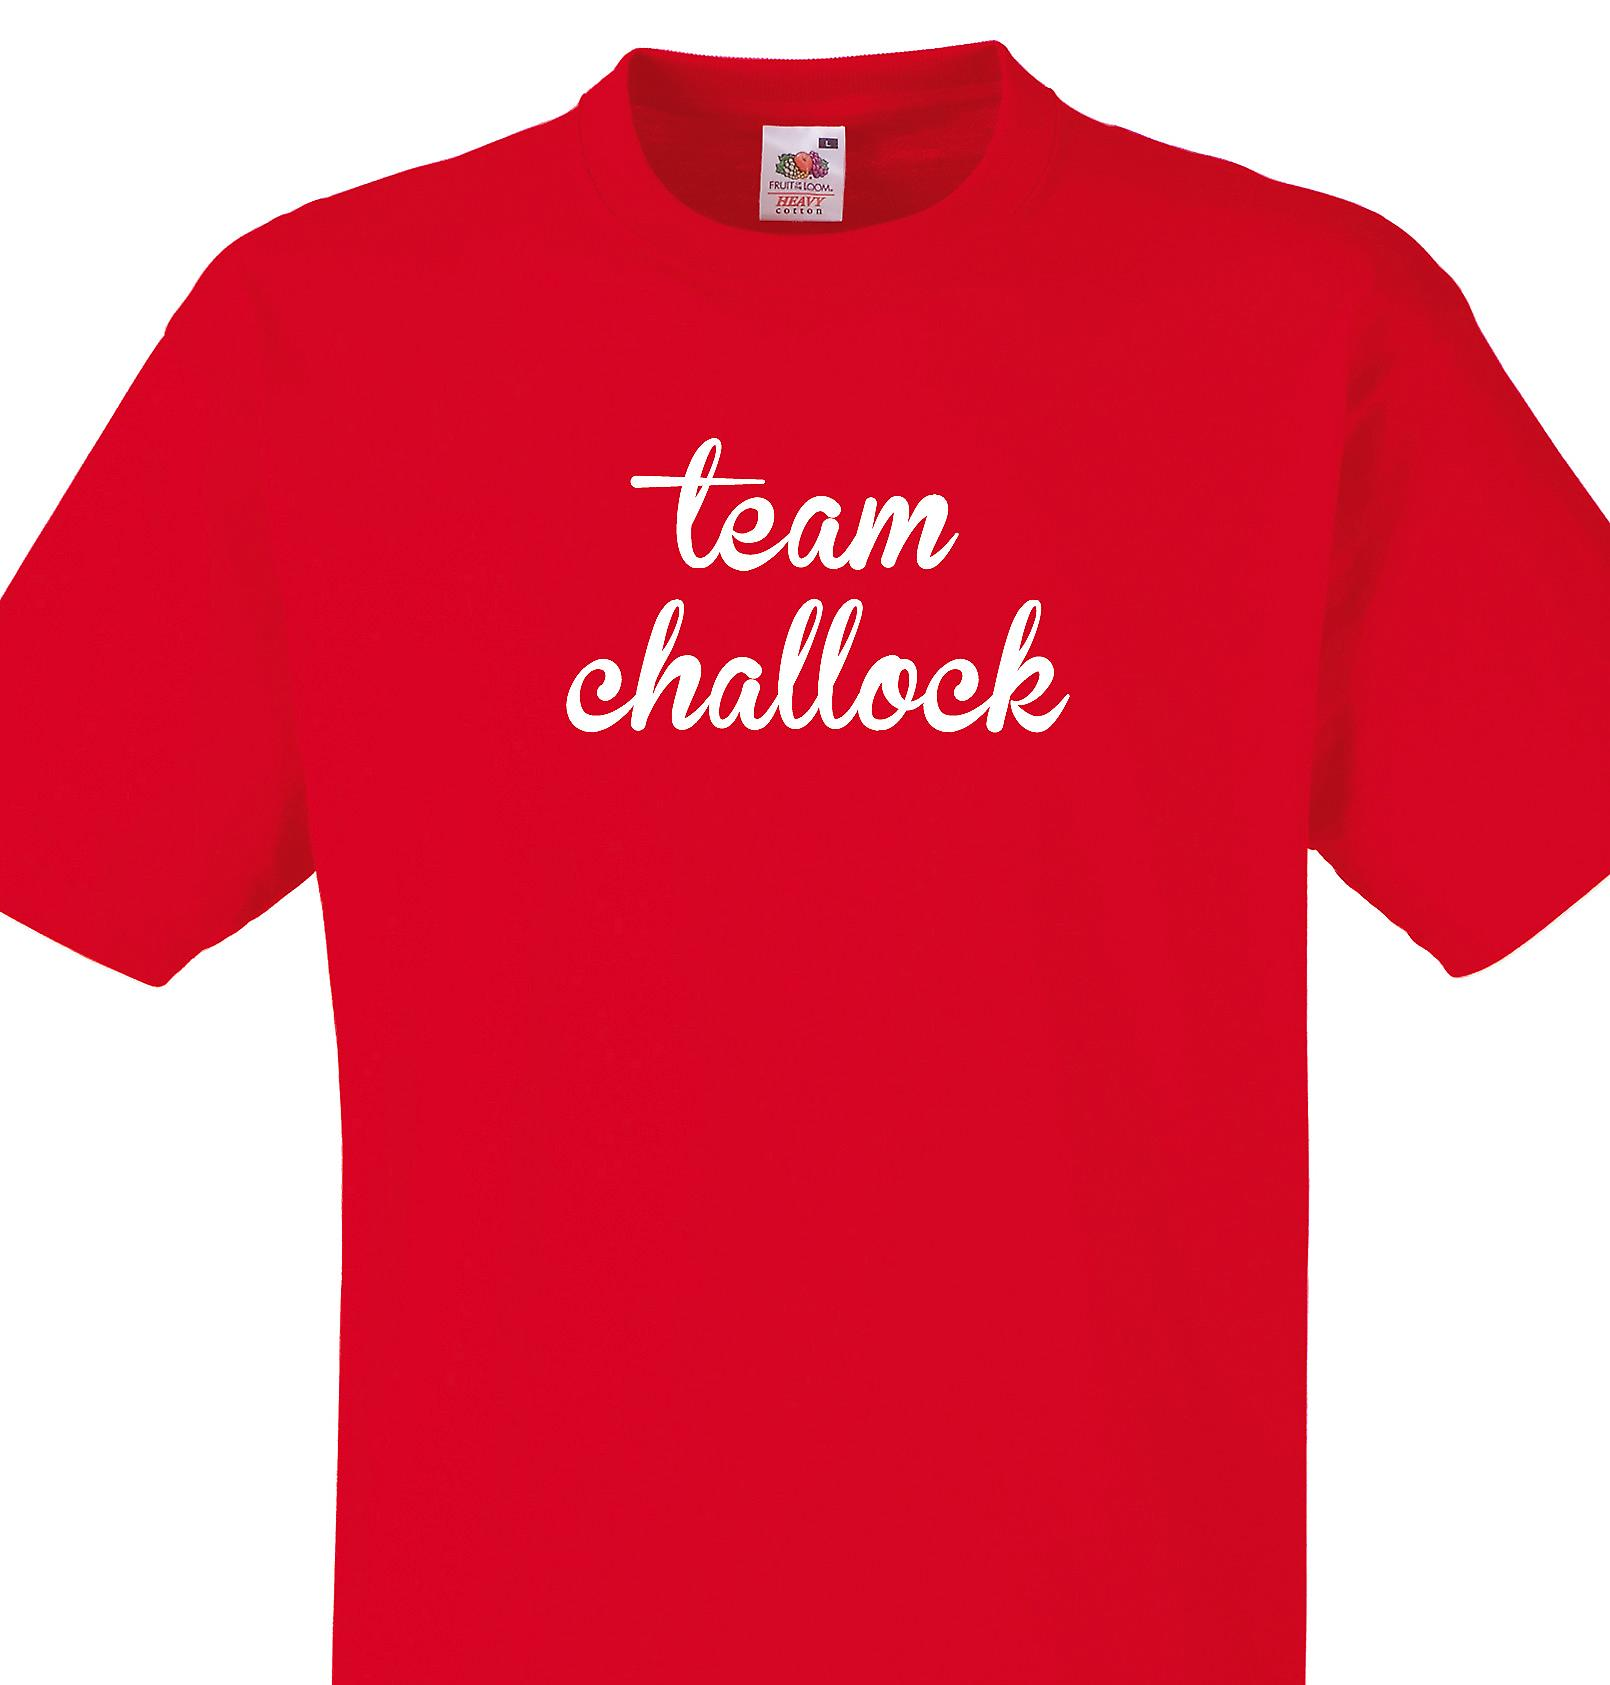 Team Challock Red T shirt